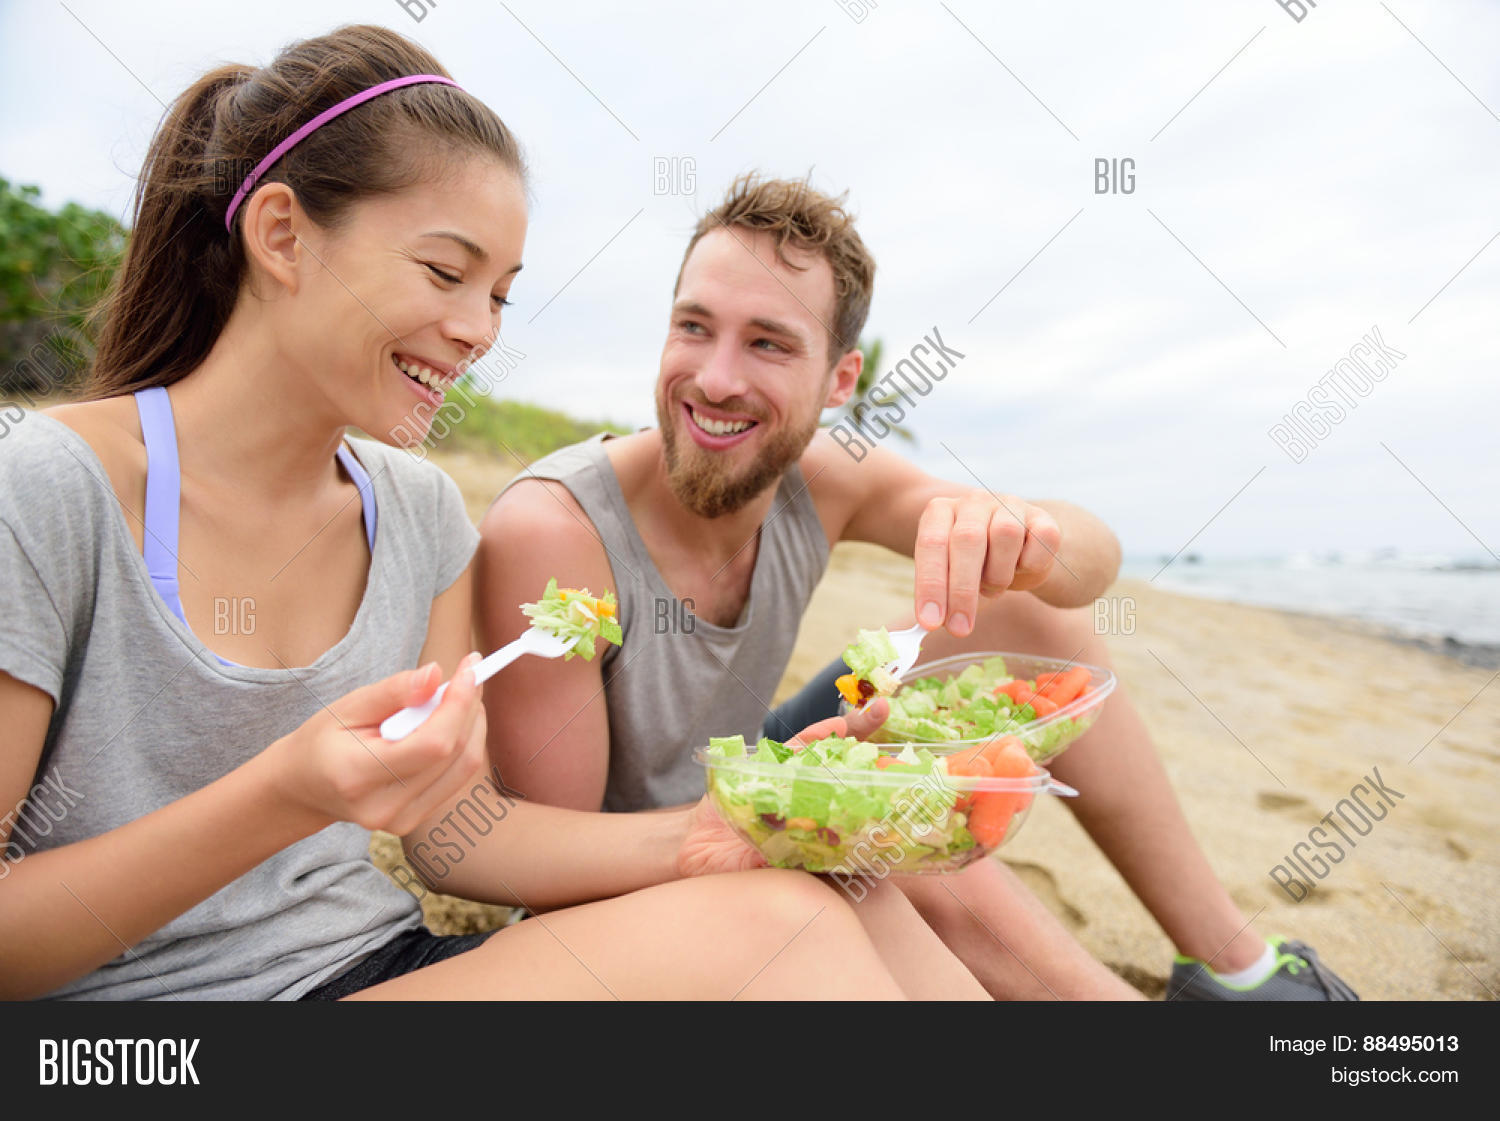 Happy Young People Eating Healthy Image & Photo | Bigstock